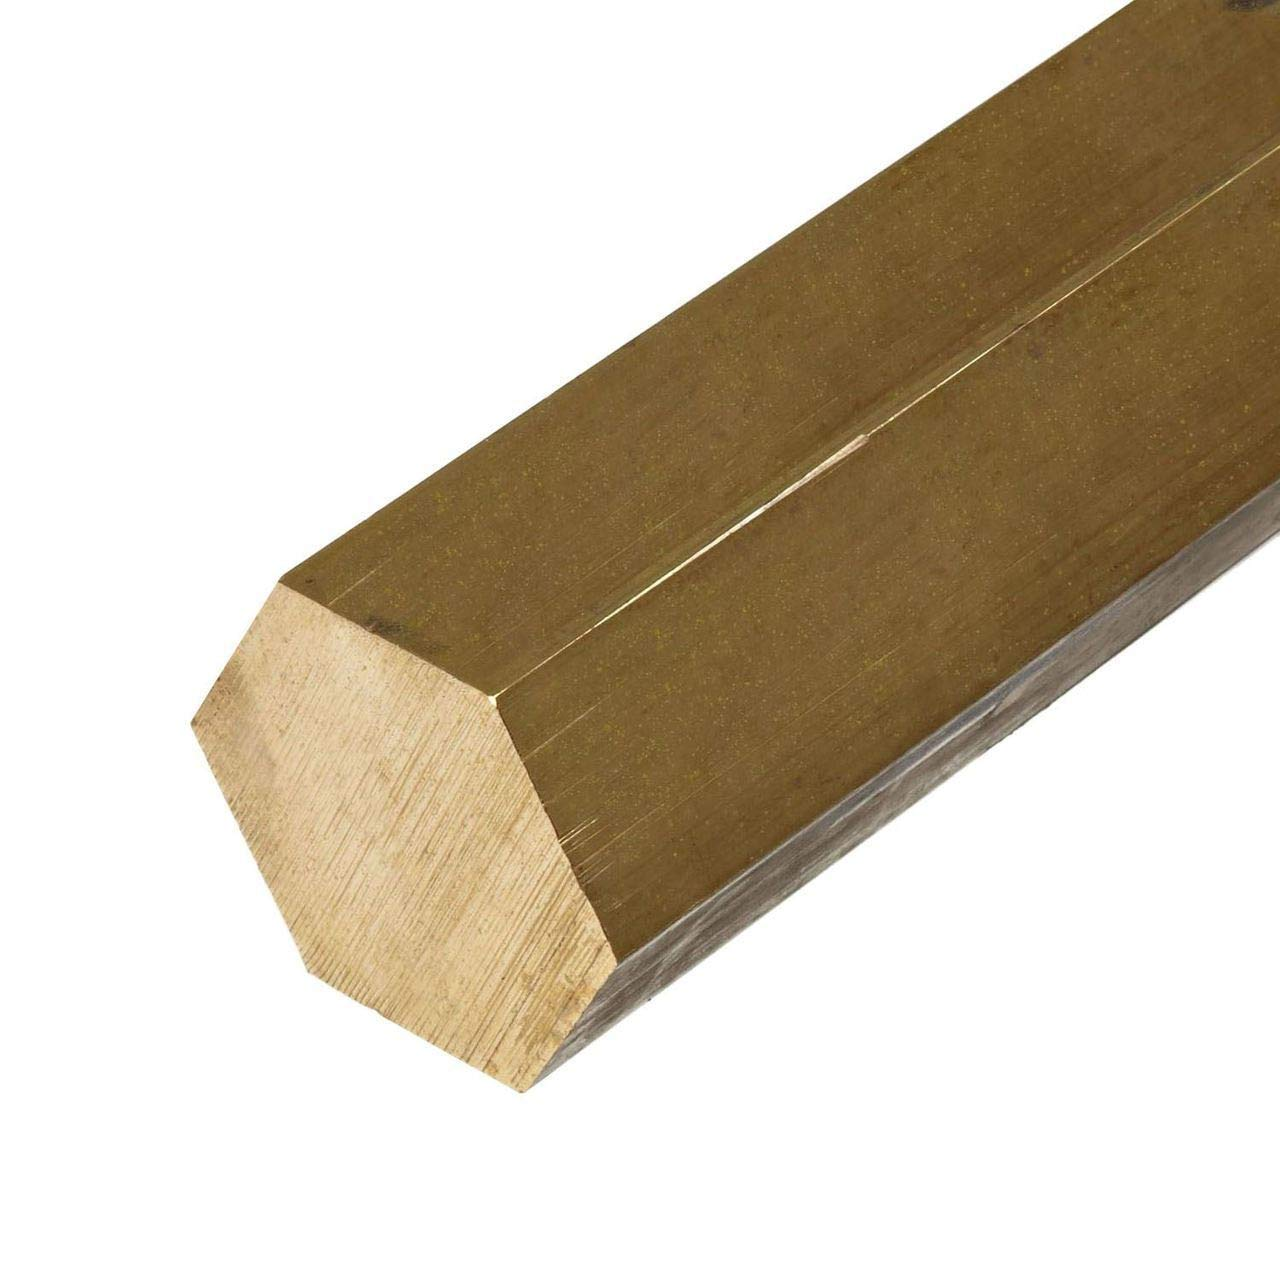 Online Metal Supply C360 Brass Hexagon Bar, 0.750 (3/4 inch) x 24 inches by Online Metal Supply